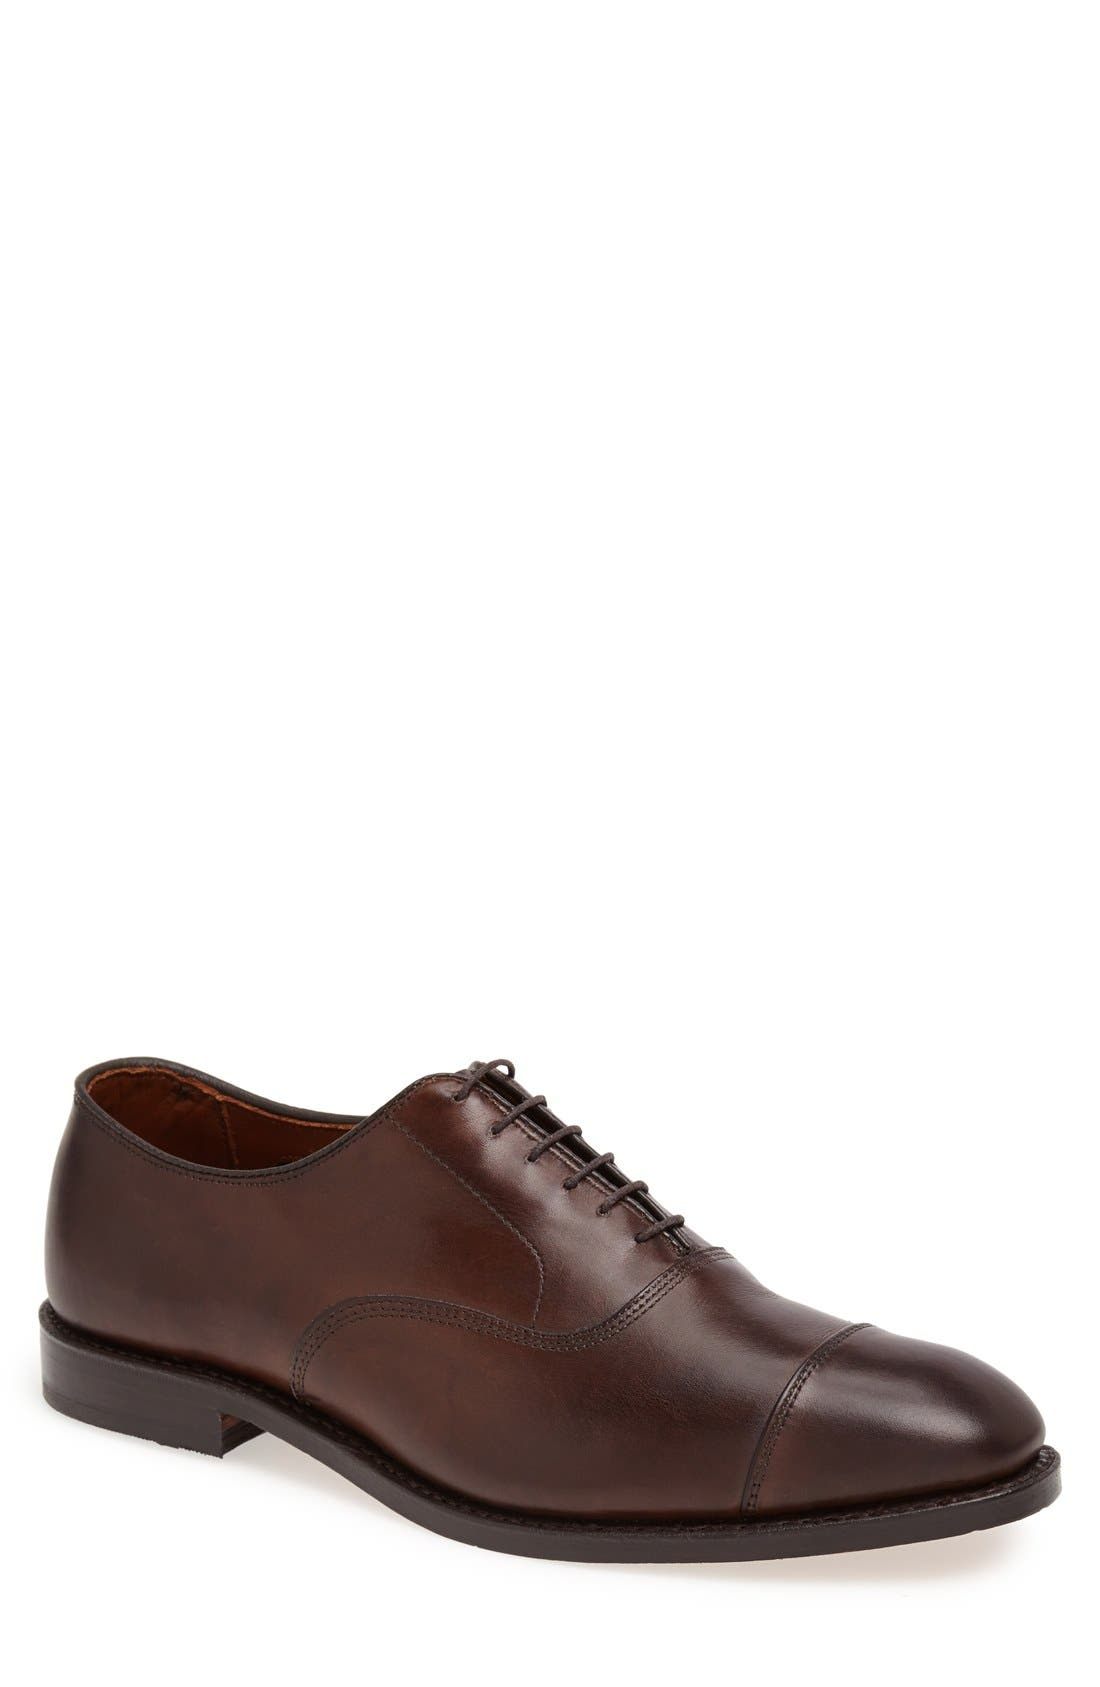 Park Avenue Oxford,                             Main thumbnail 1, color,                             DARK BROWN BURNISHED LEATHER